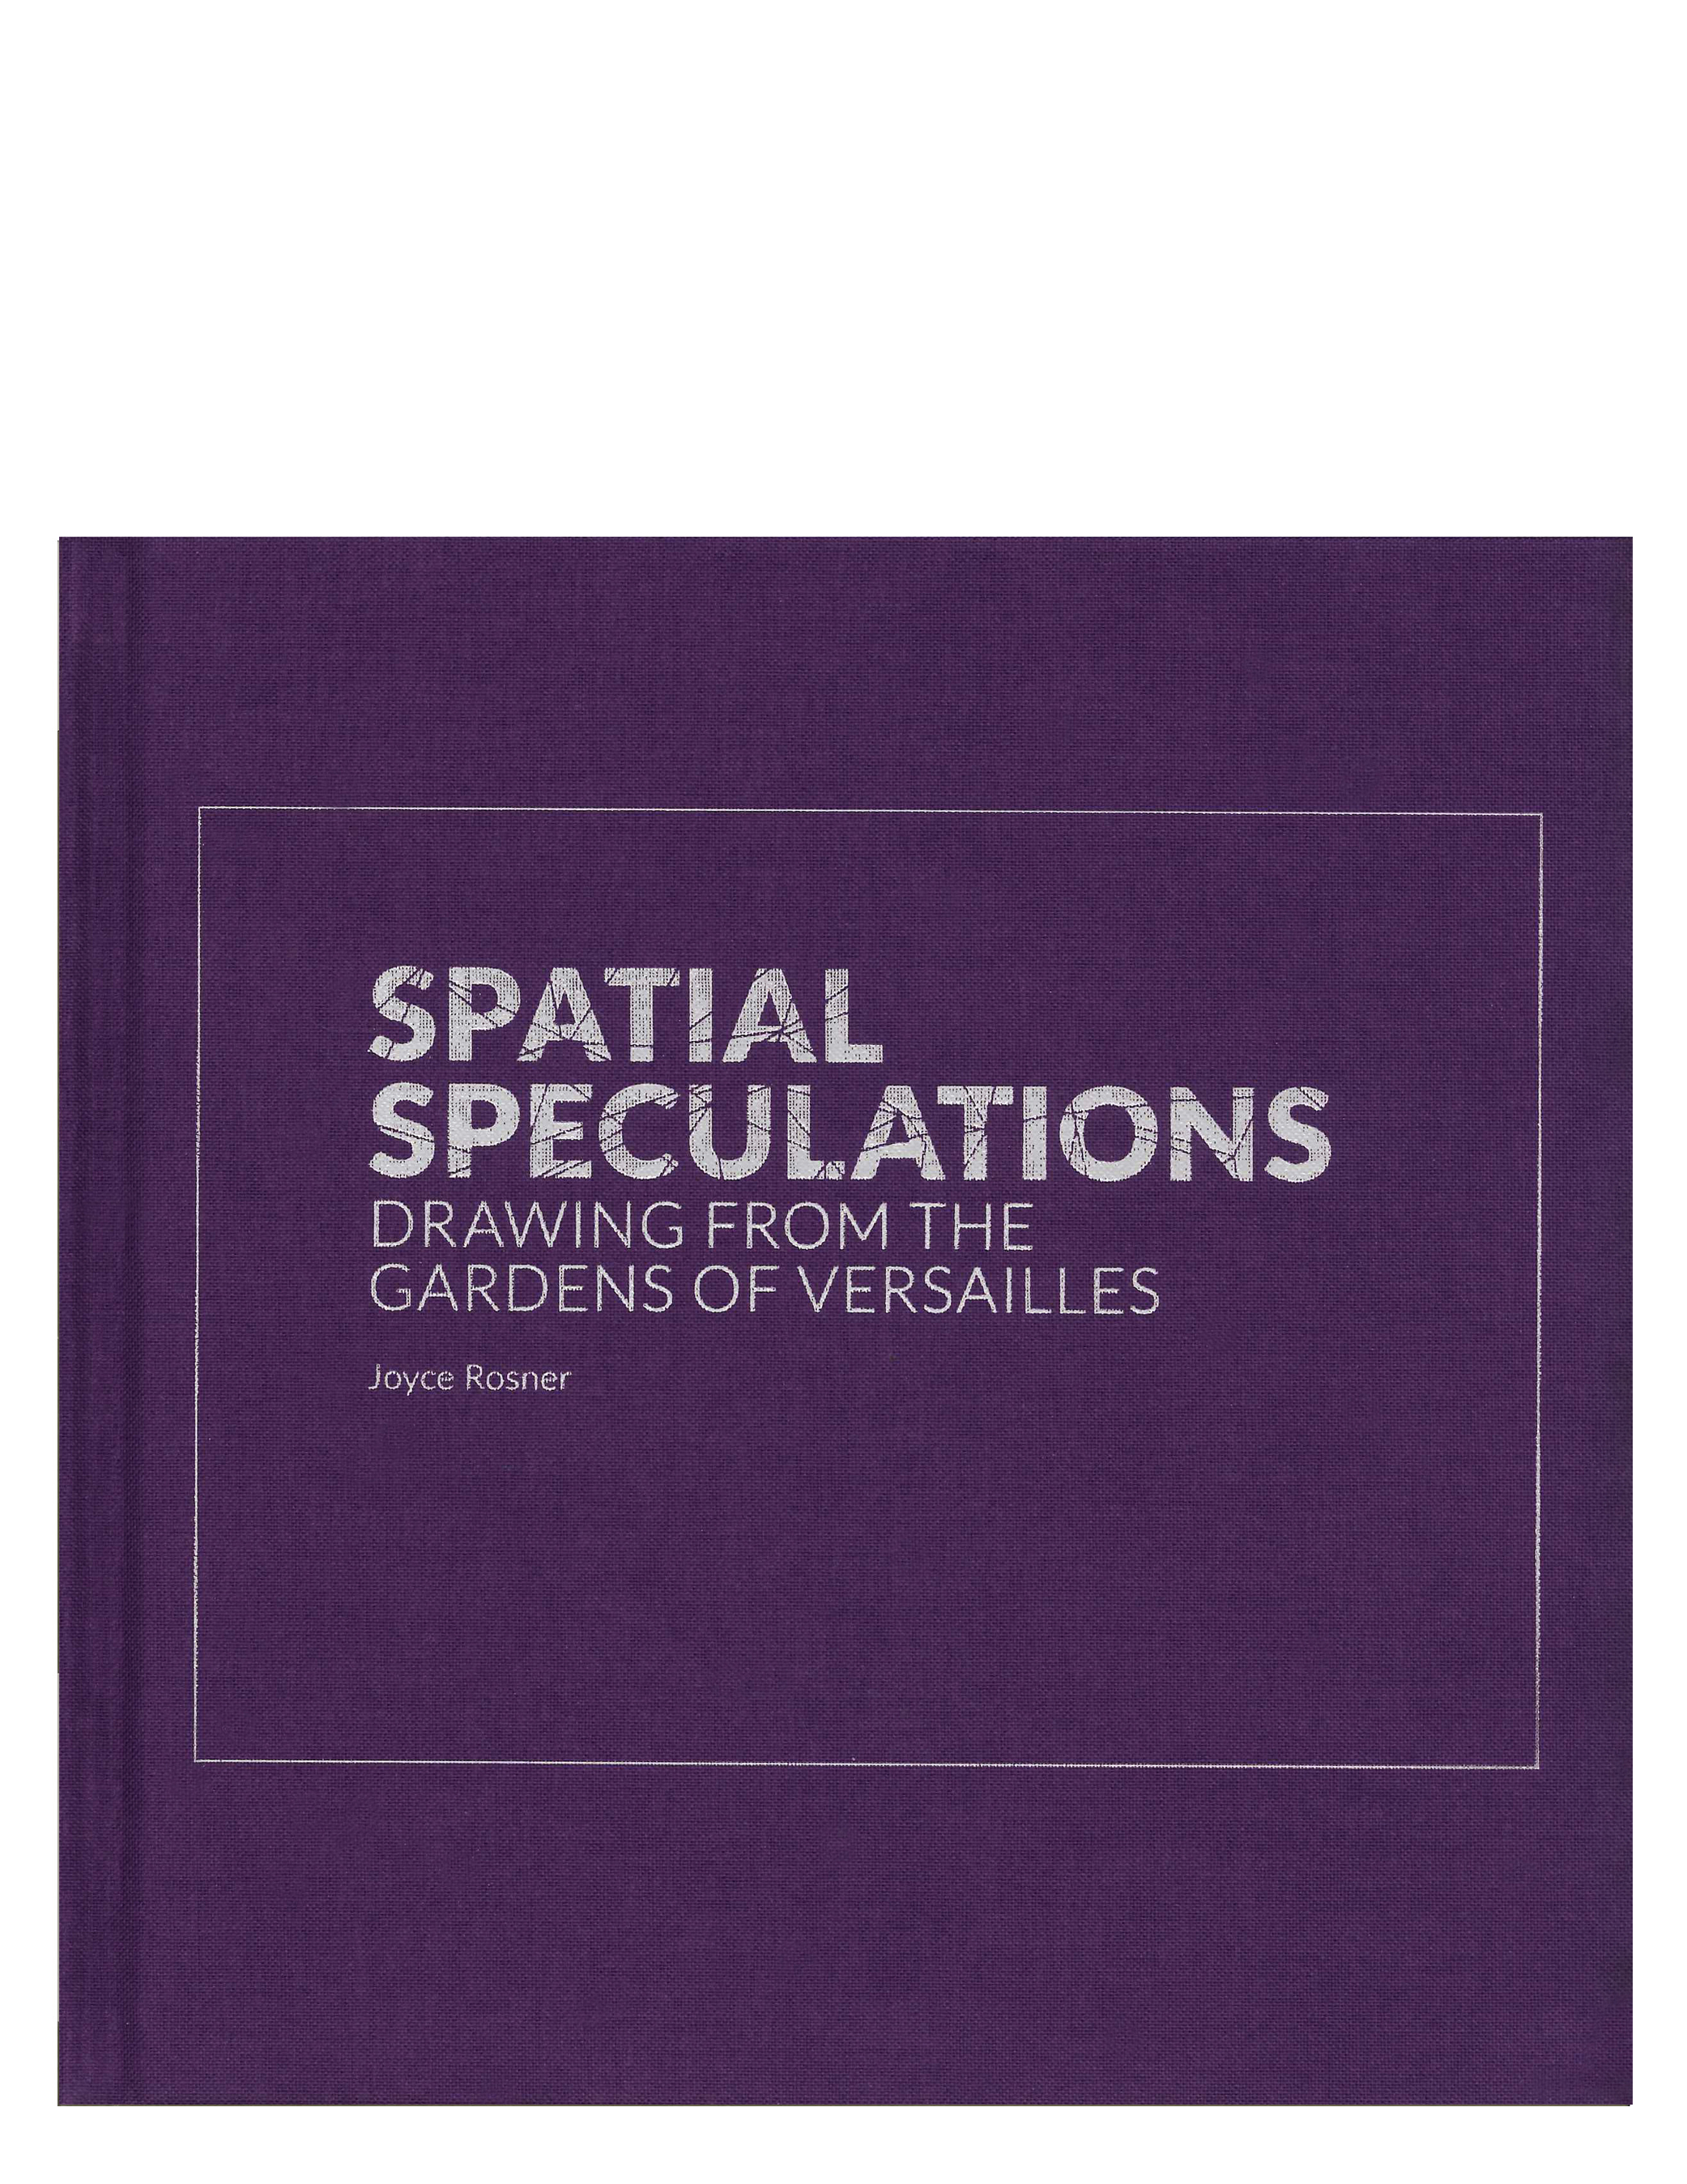 Centerline 12: Spatial Speculations, Drawing from the Gardens of Versailles cover